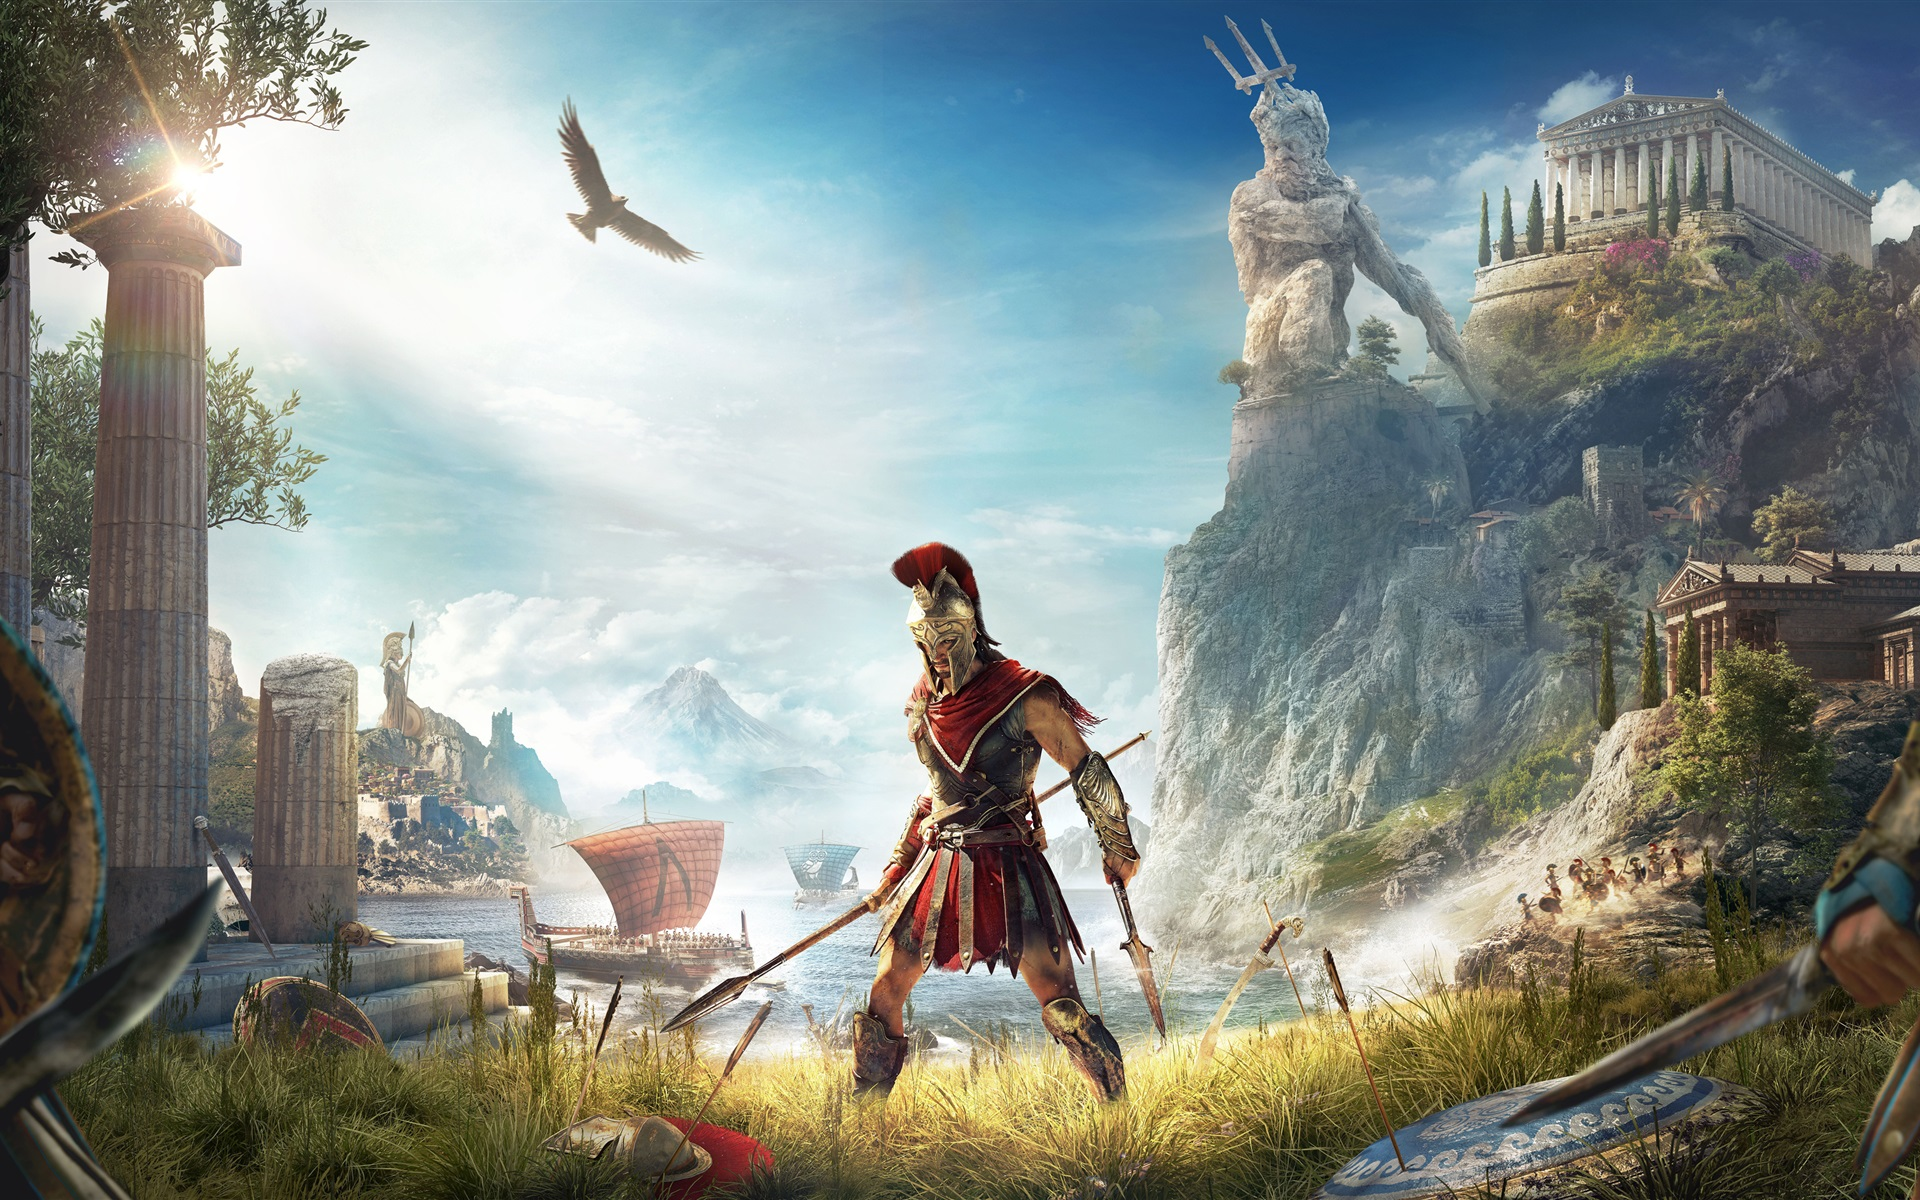 Full Hd Widescreen Wallpapers 1920x1080 Wallpaper Assassin S Creed Odyssey E3 2018 3840x2160 Uhd